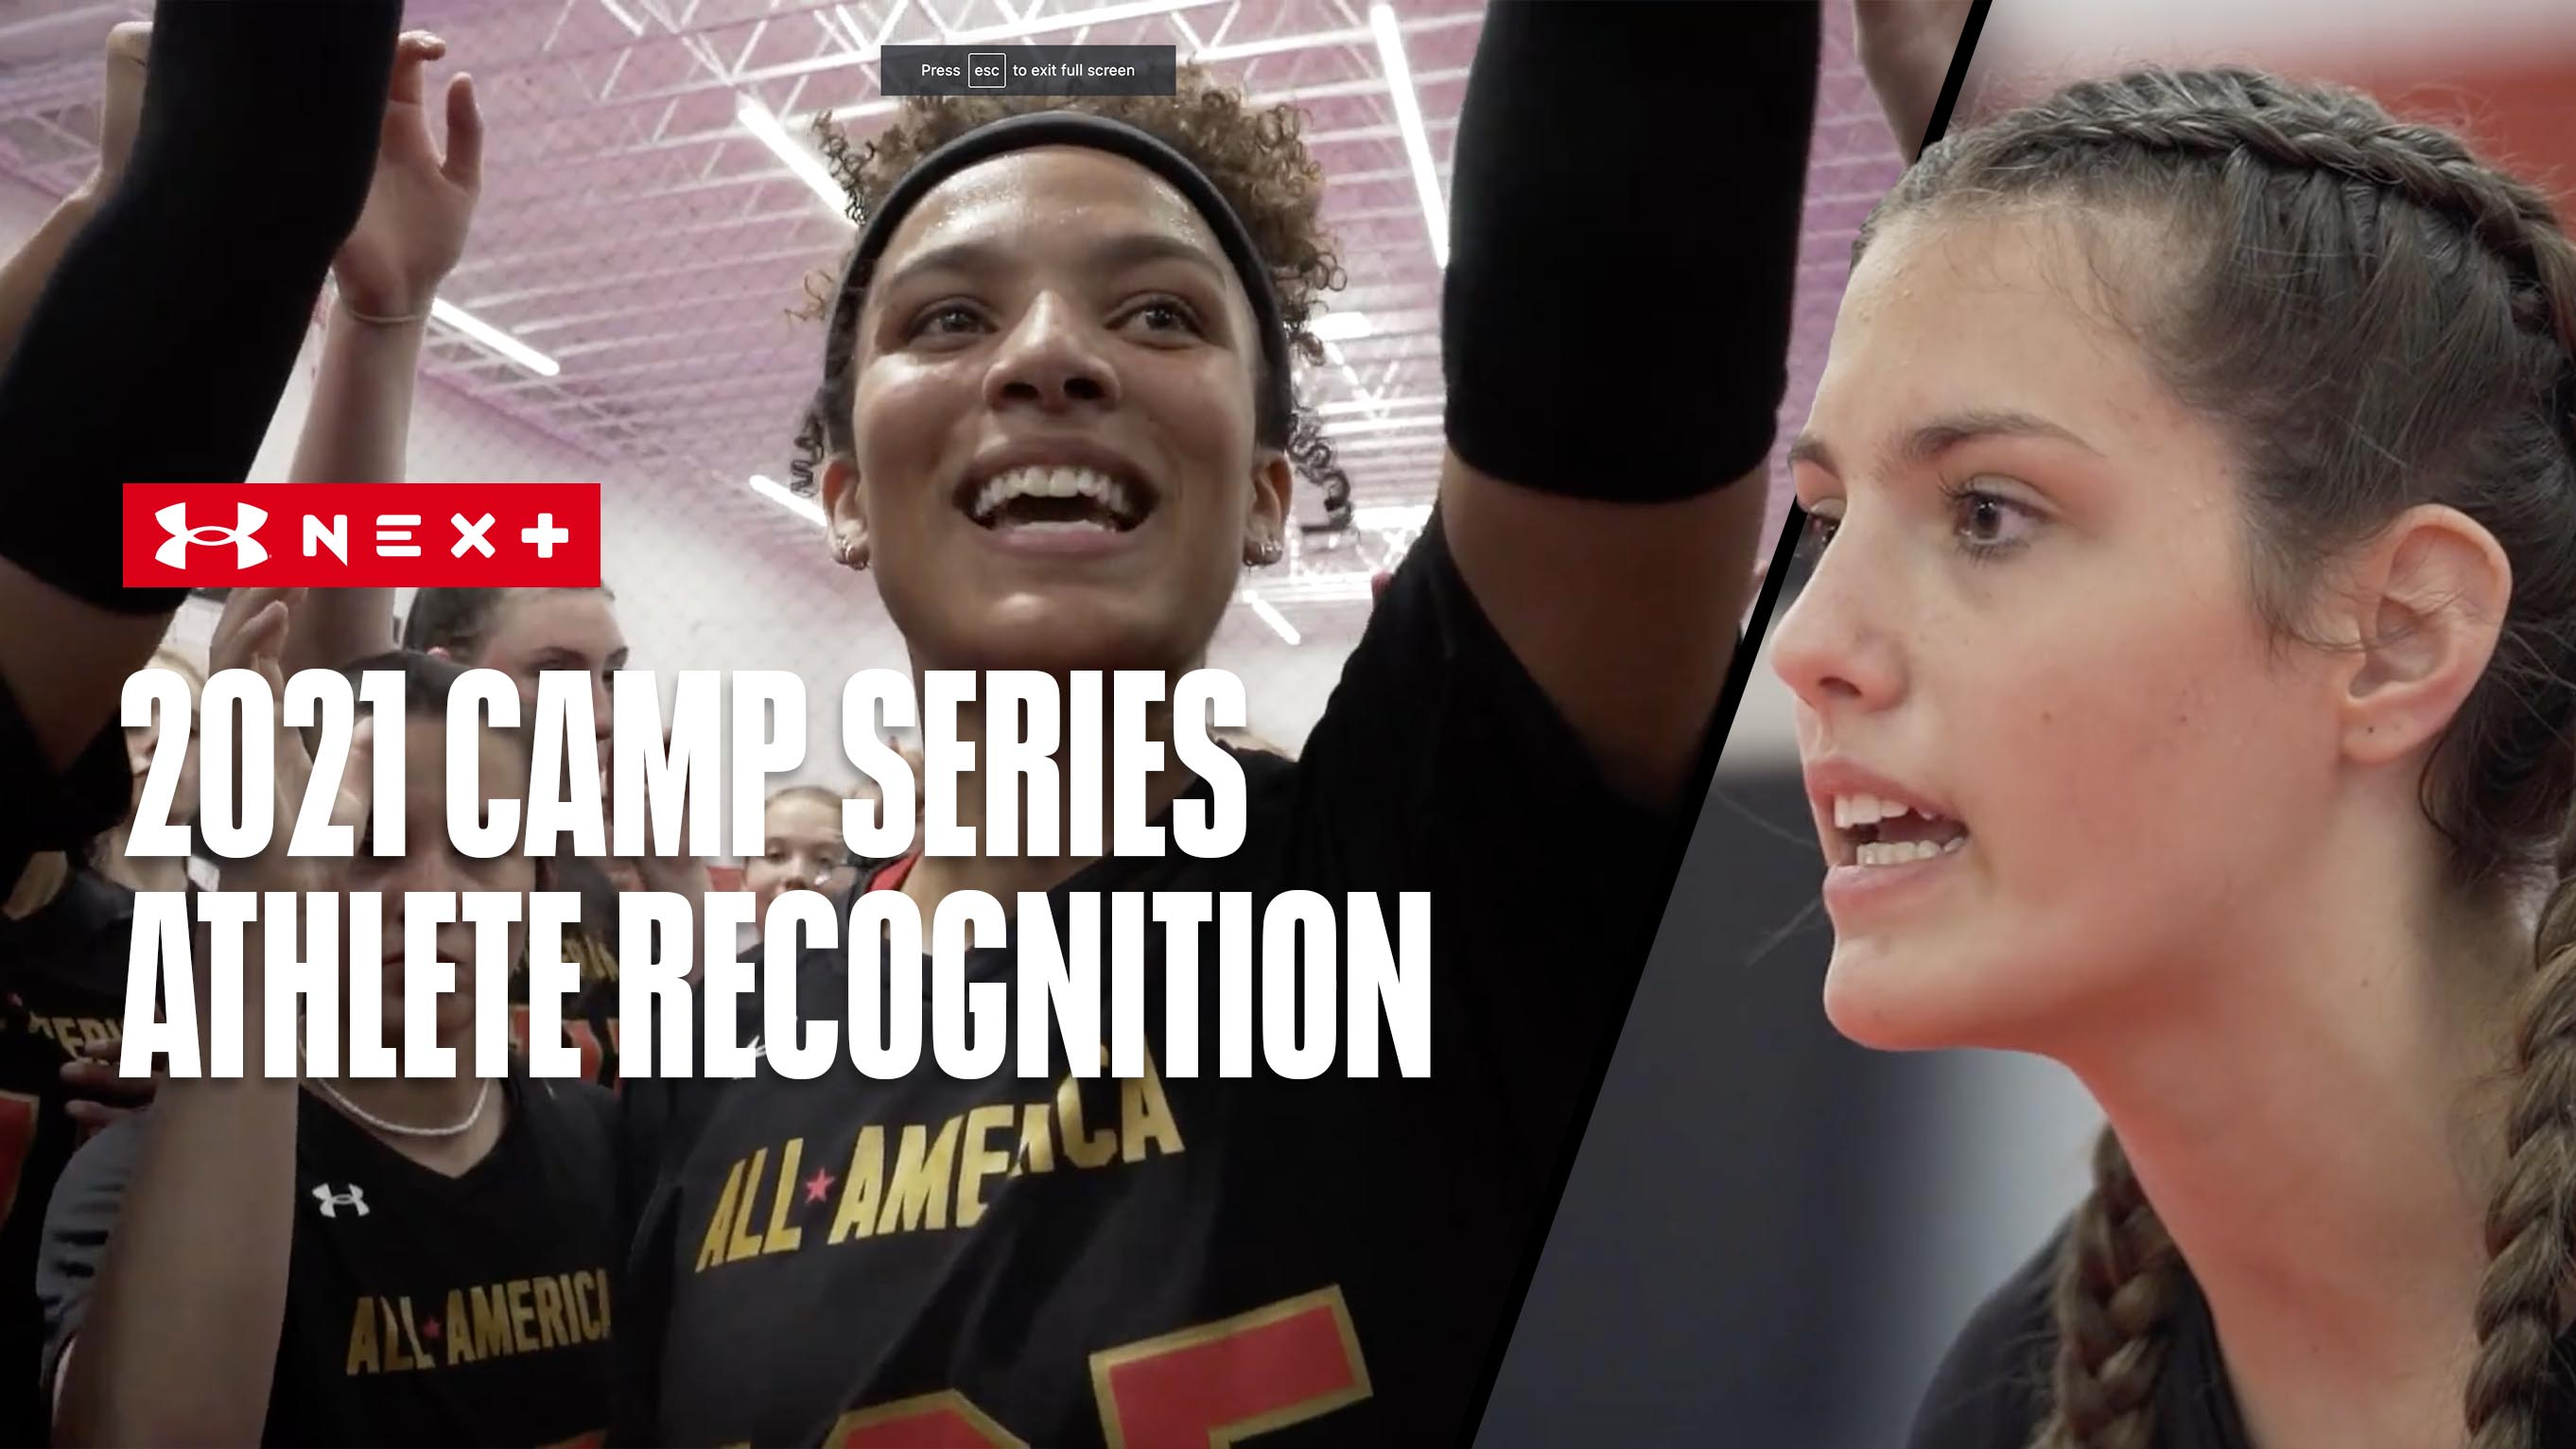 2021 Camp Series Athlete Recognition